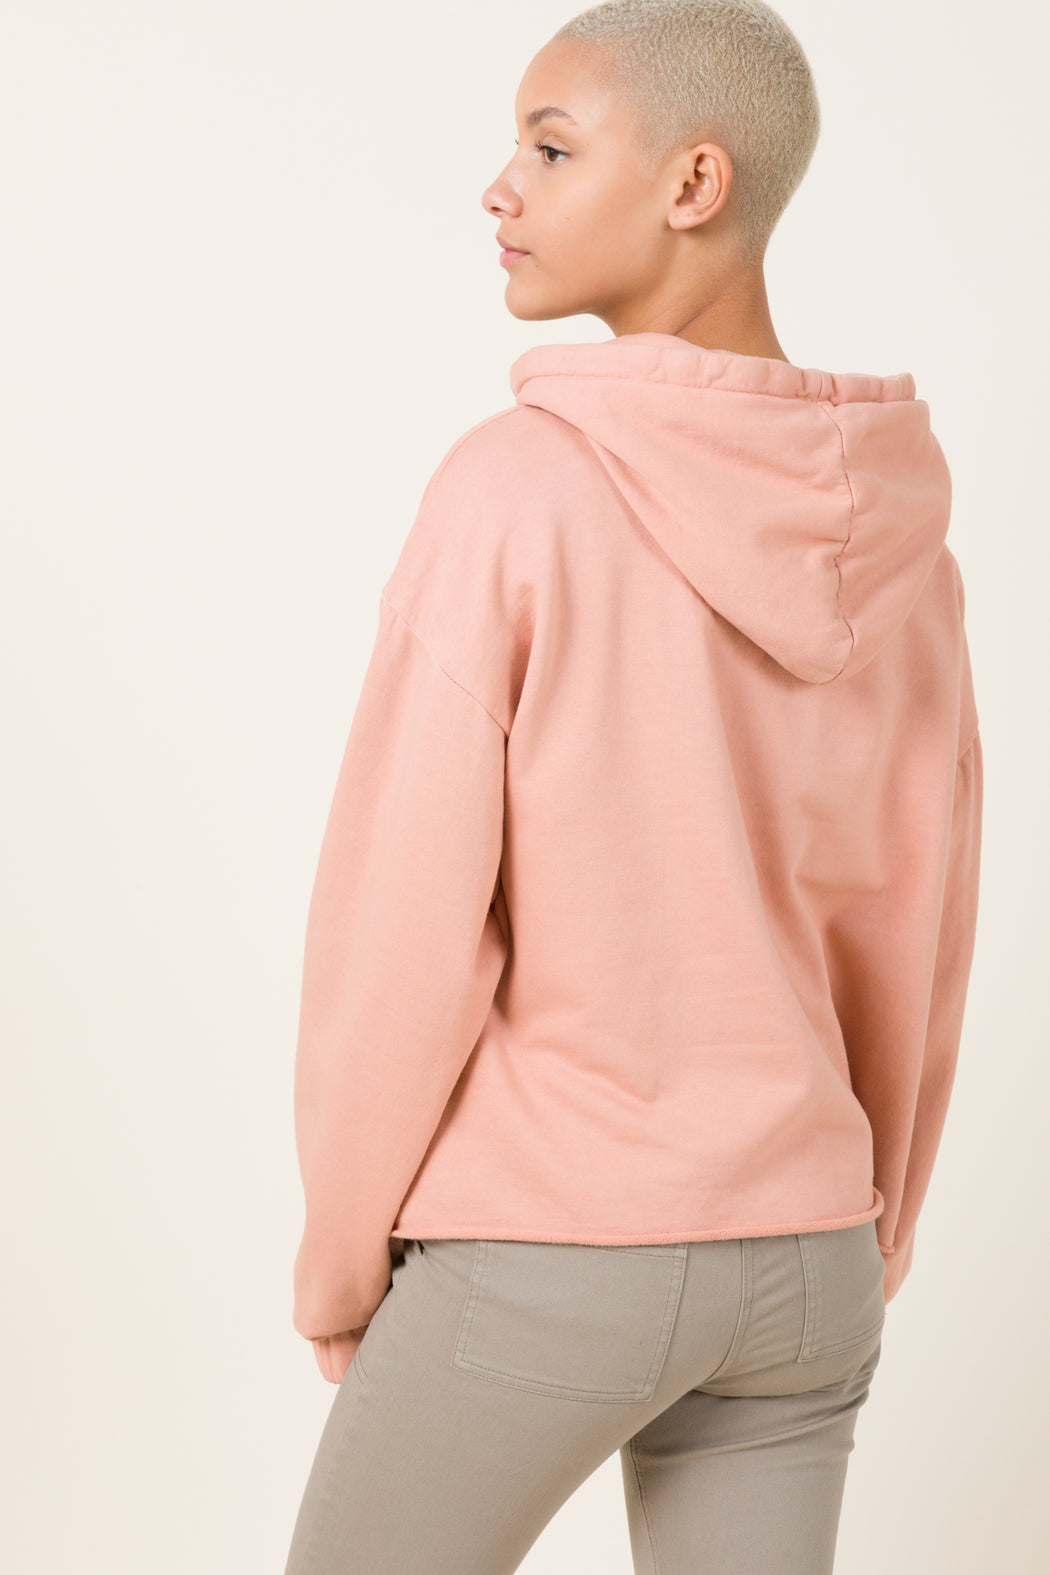 Our Band Together hoodie in Pink Guava is an oversized pullover hoodie with deconstructed hem and elasticated cuffs. Evocative of the 70's era home sewing, the smaller hood and oversized fit update this style.